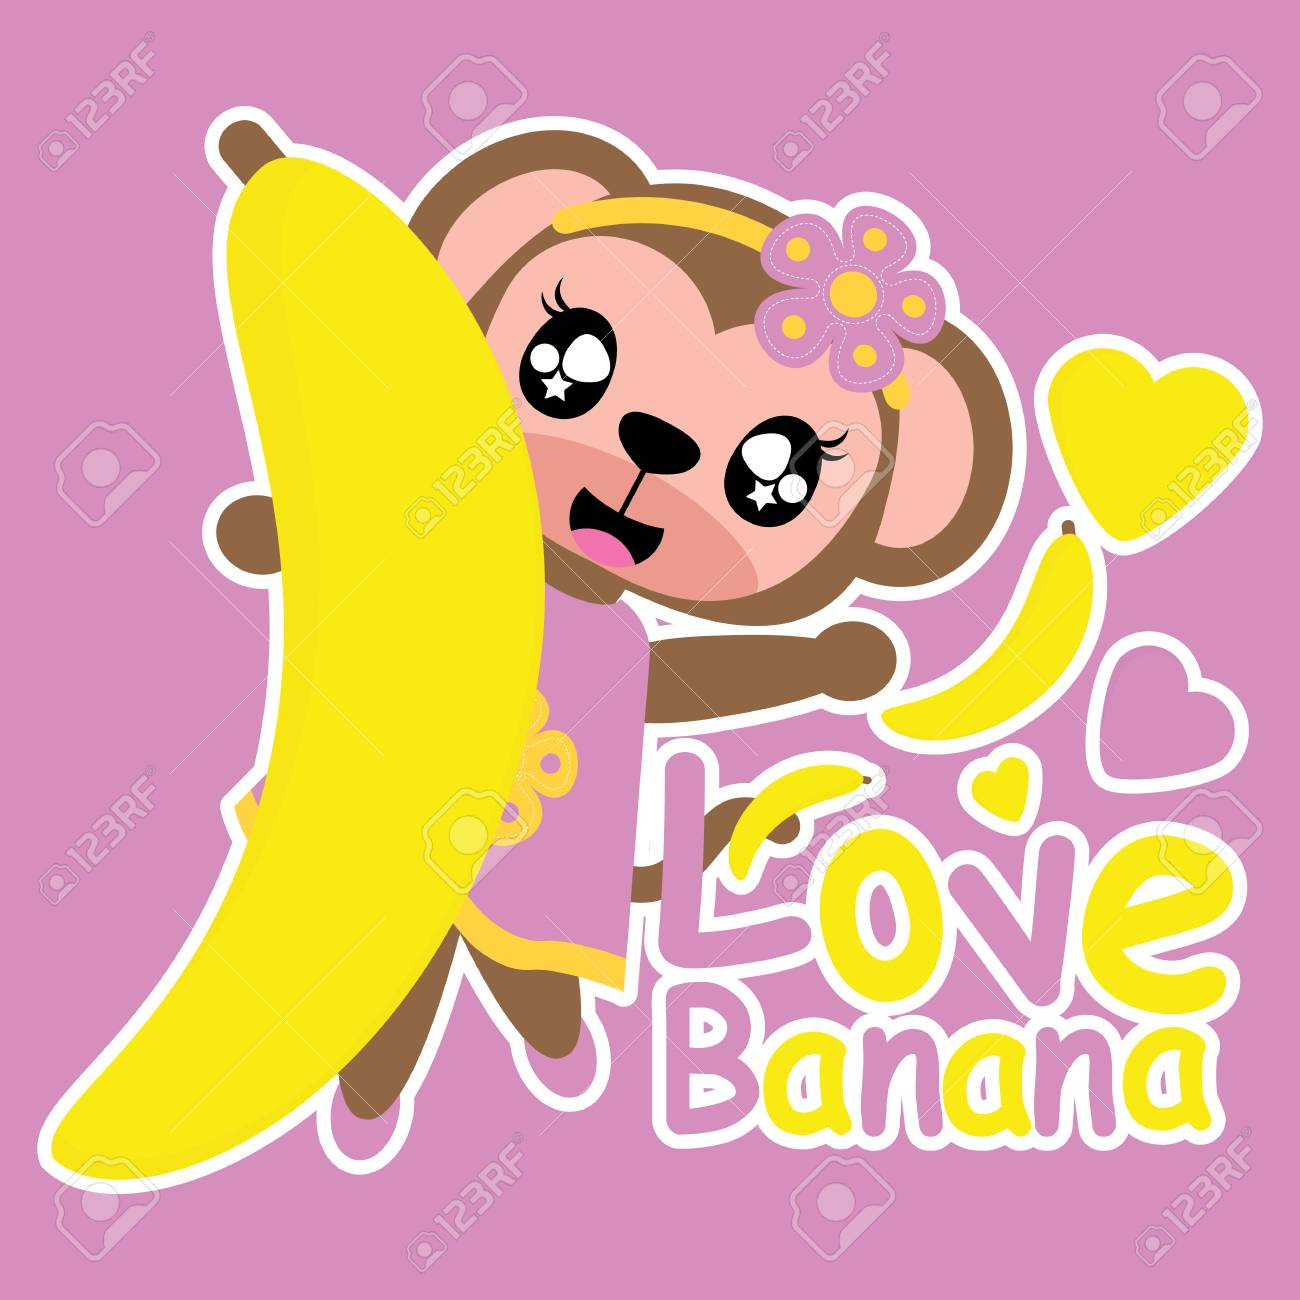 Cute Monkey Girl Loves Banana Vector Cartoon Illustration For